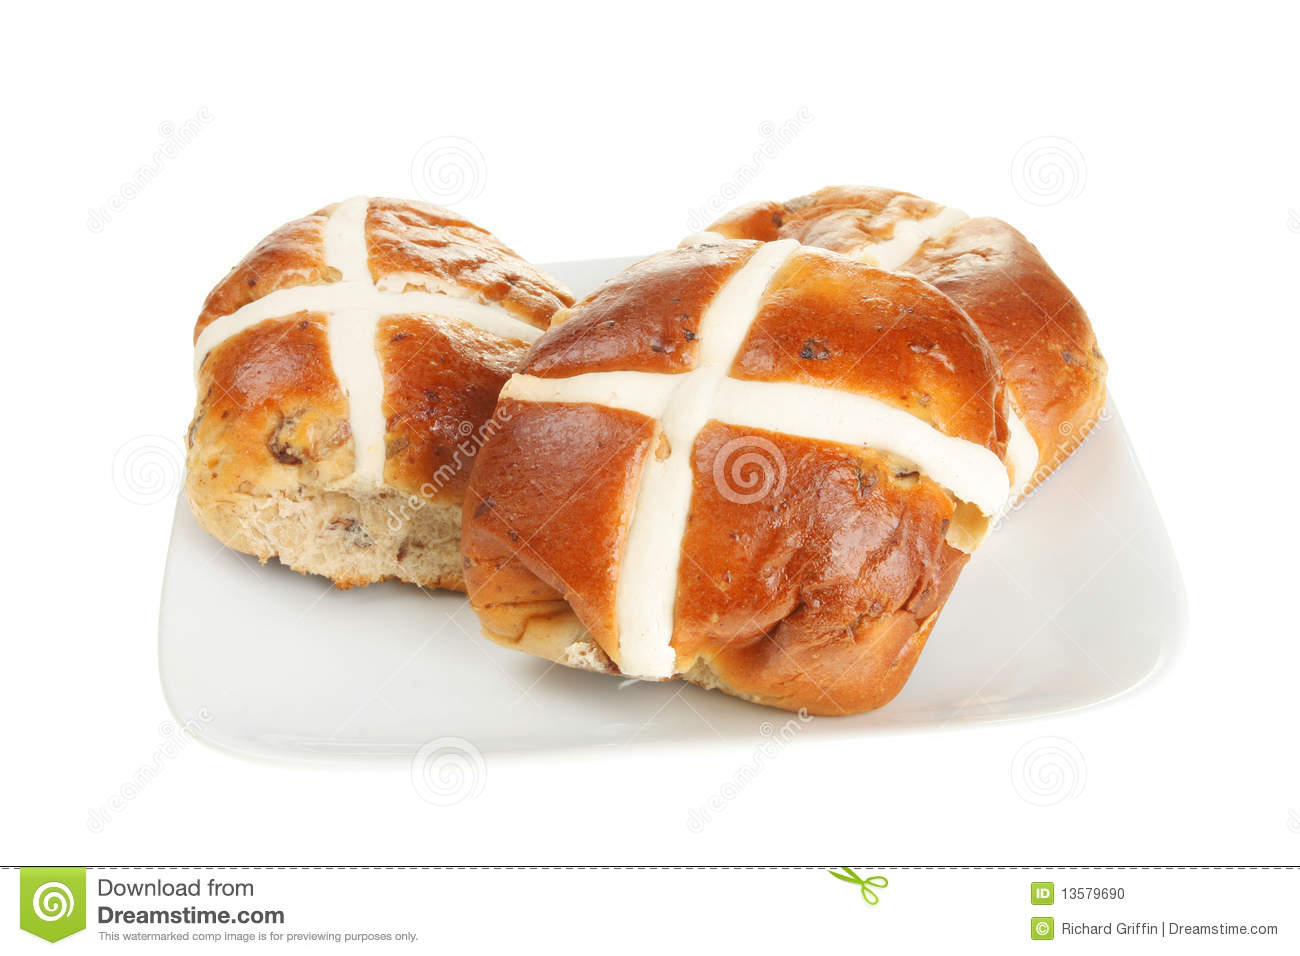 Hot Cross Buns Stock Photo - Image: 13579690